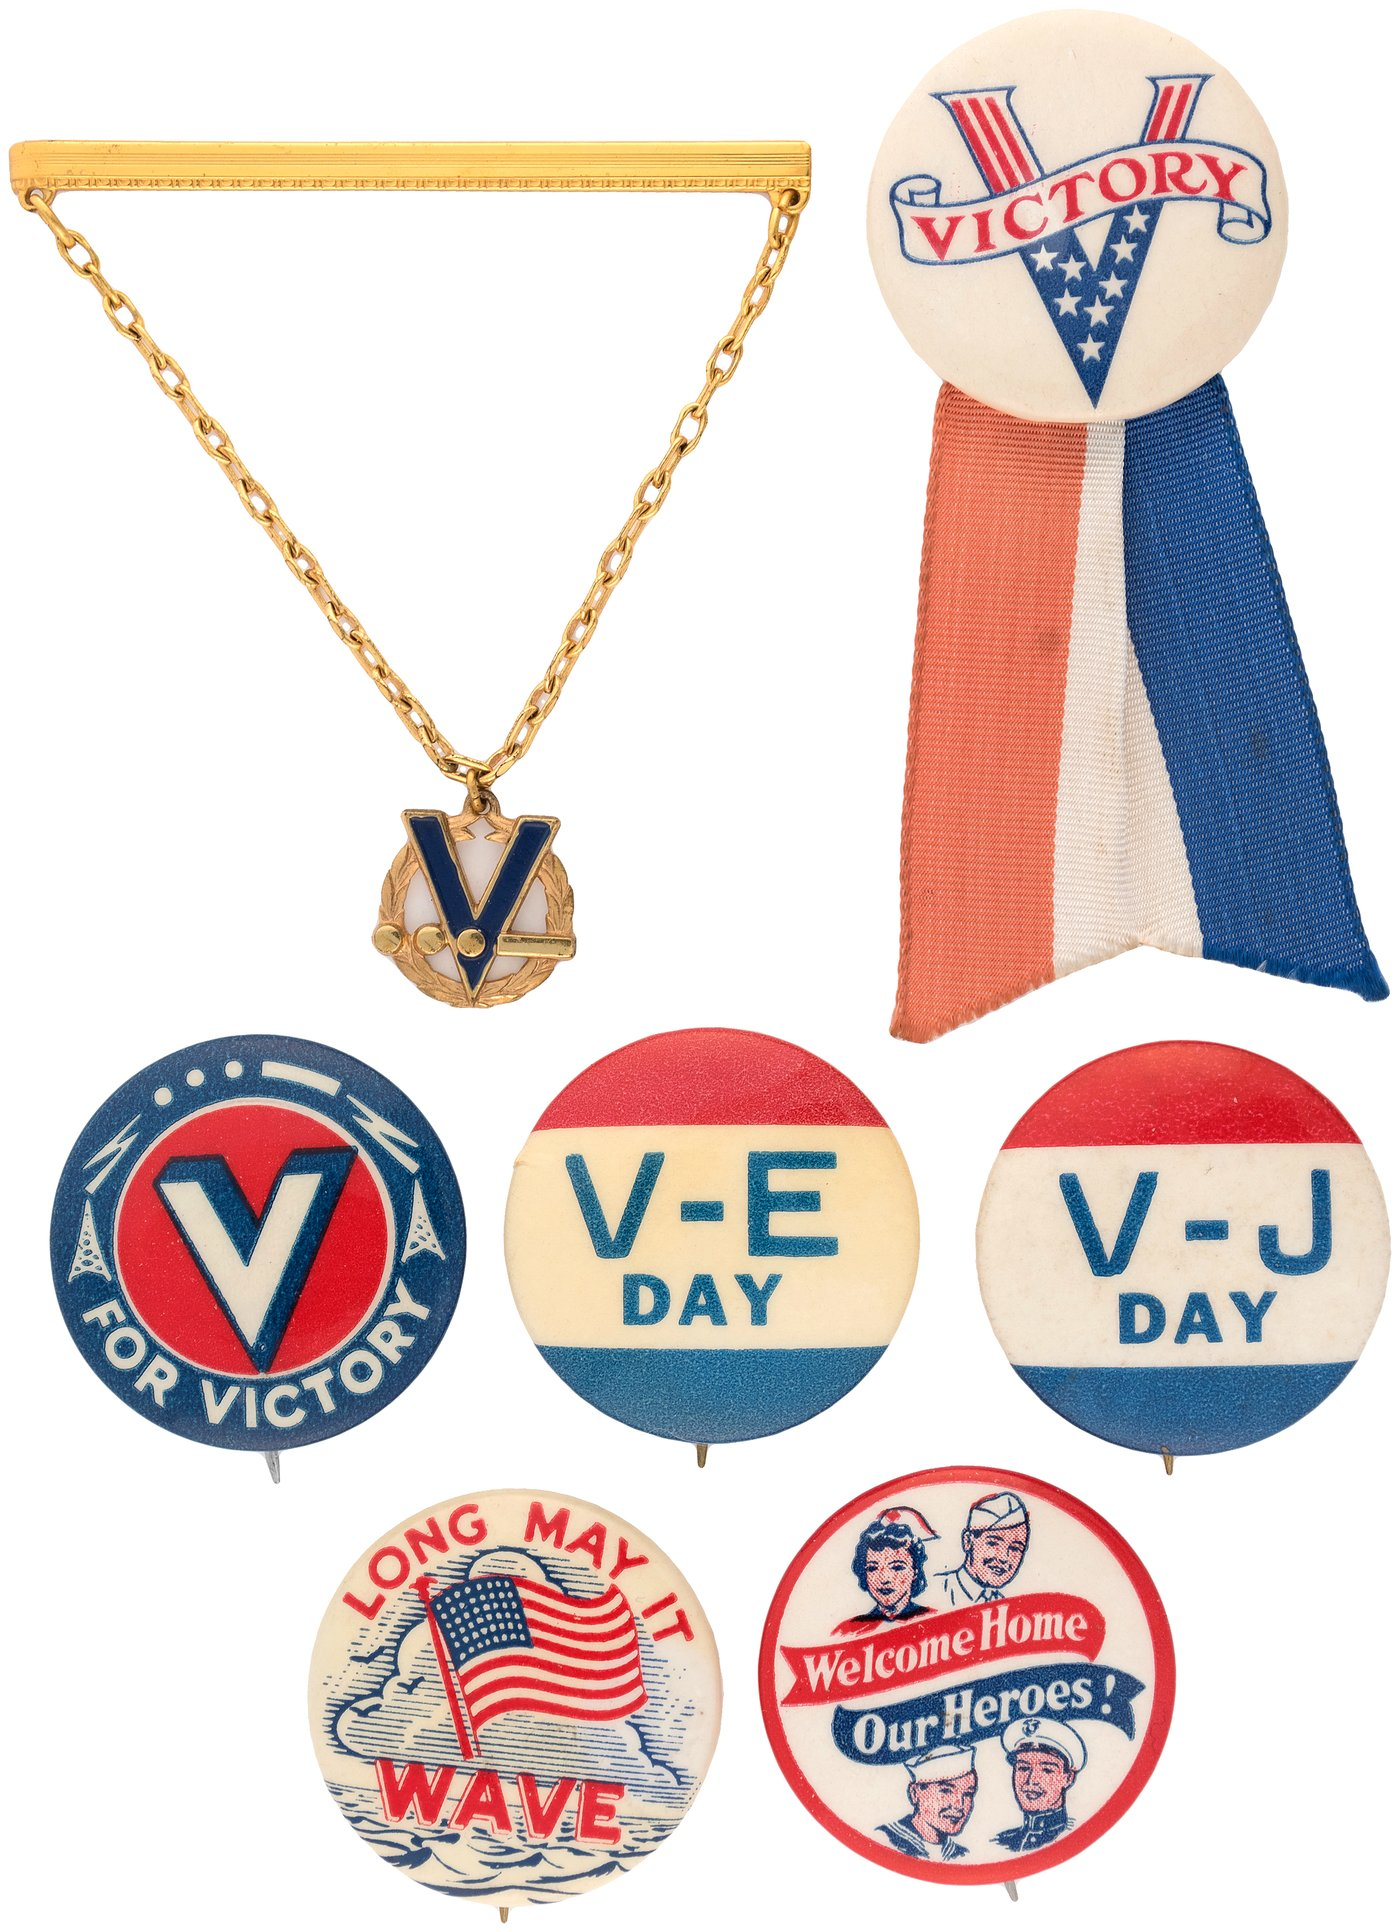 Hake's - WORLD WAR II SIX VICTORY BUTTONS PLUS VICTORY BRASS